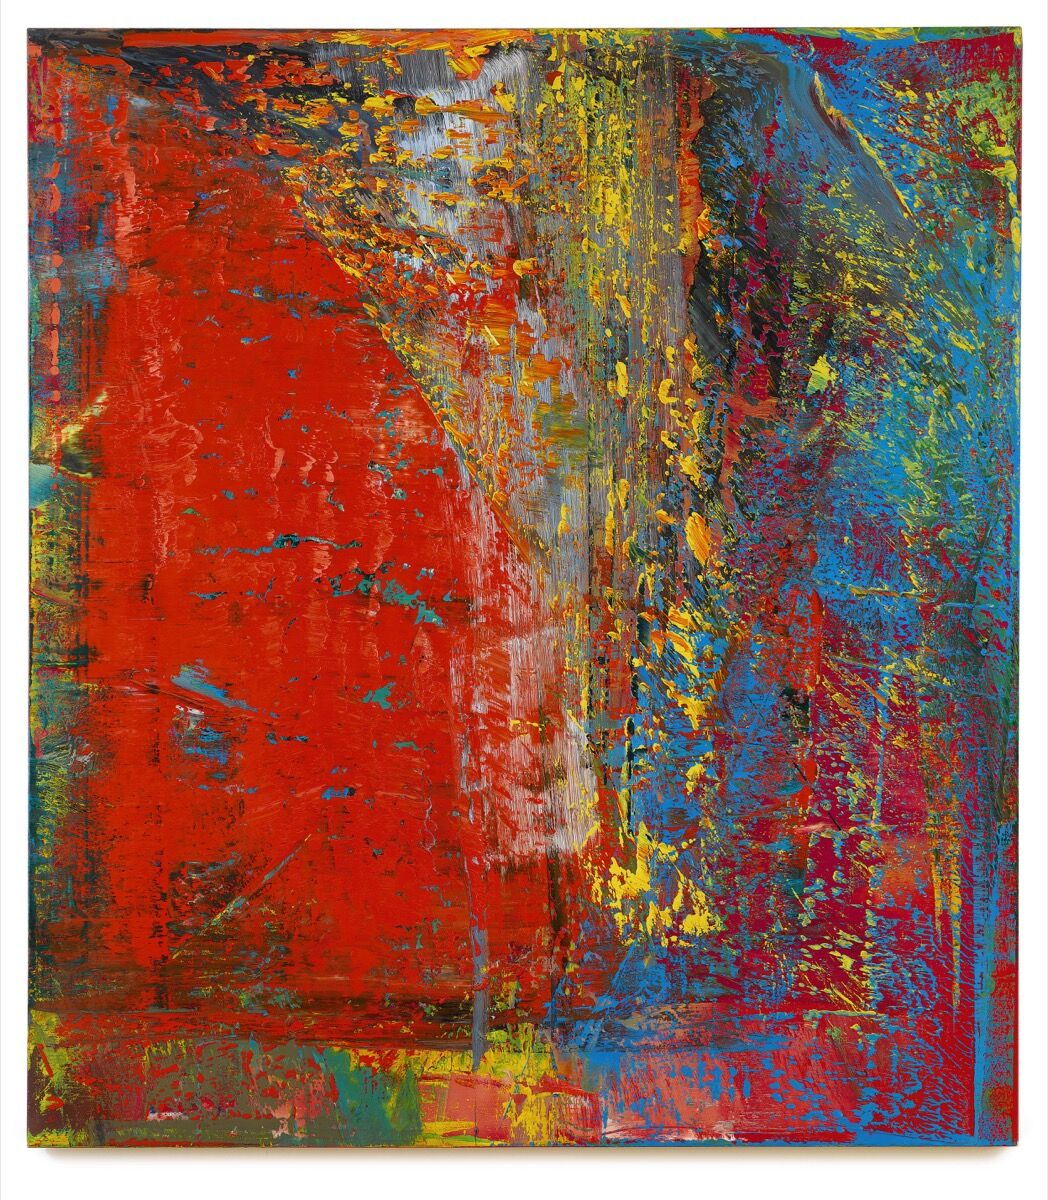 Gerhard Richter, A B, Still, 1986. © Gerhard Richter, 2016. Image courtesy of Sotheby's.